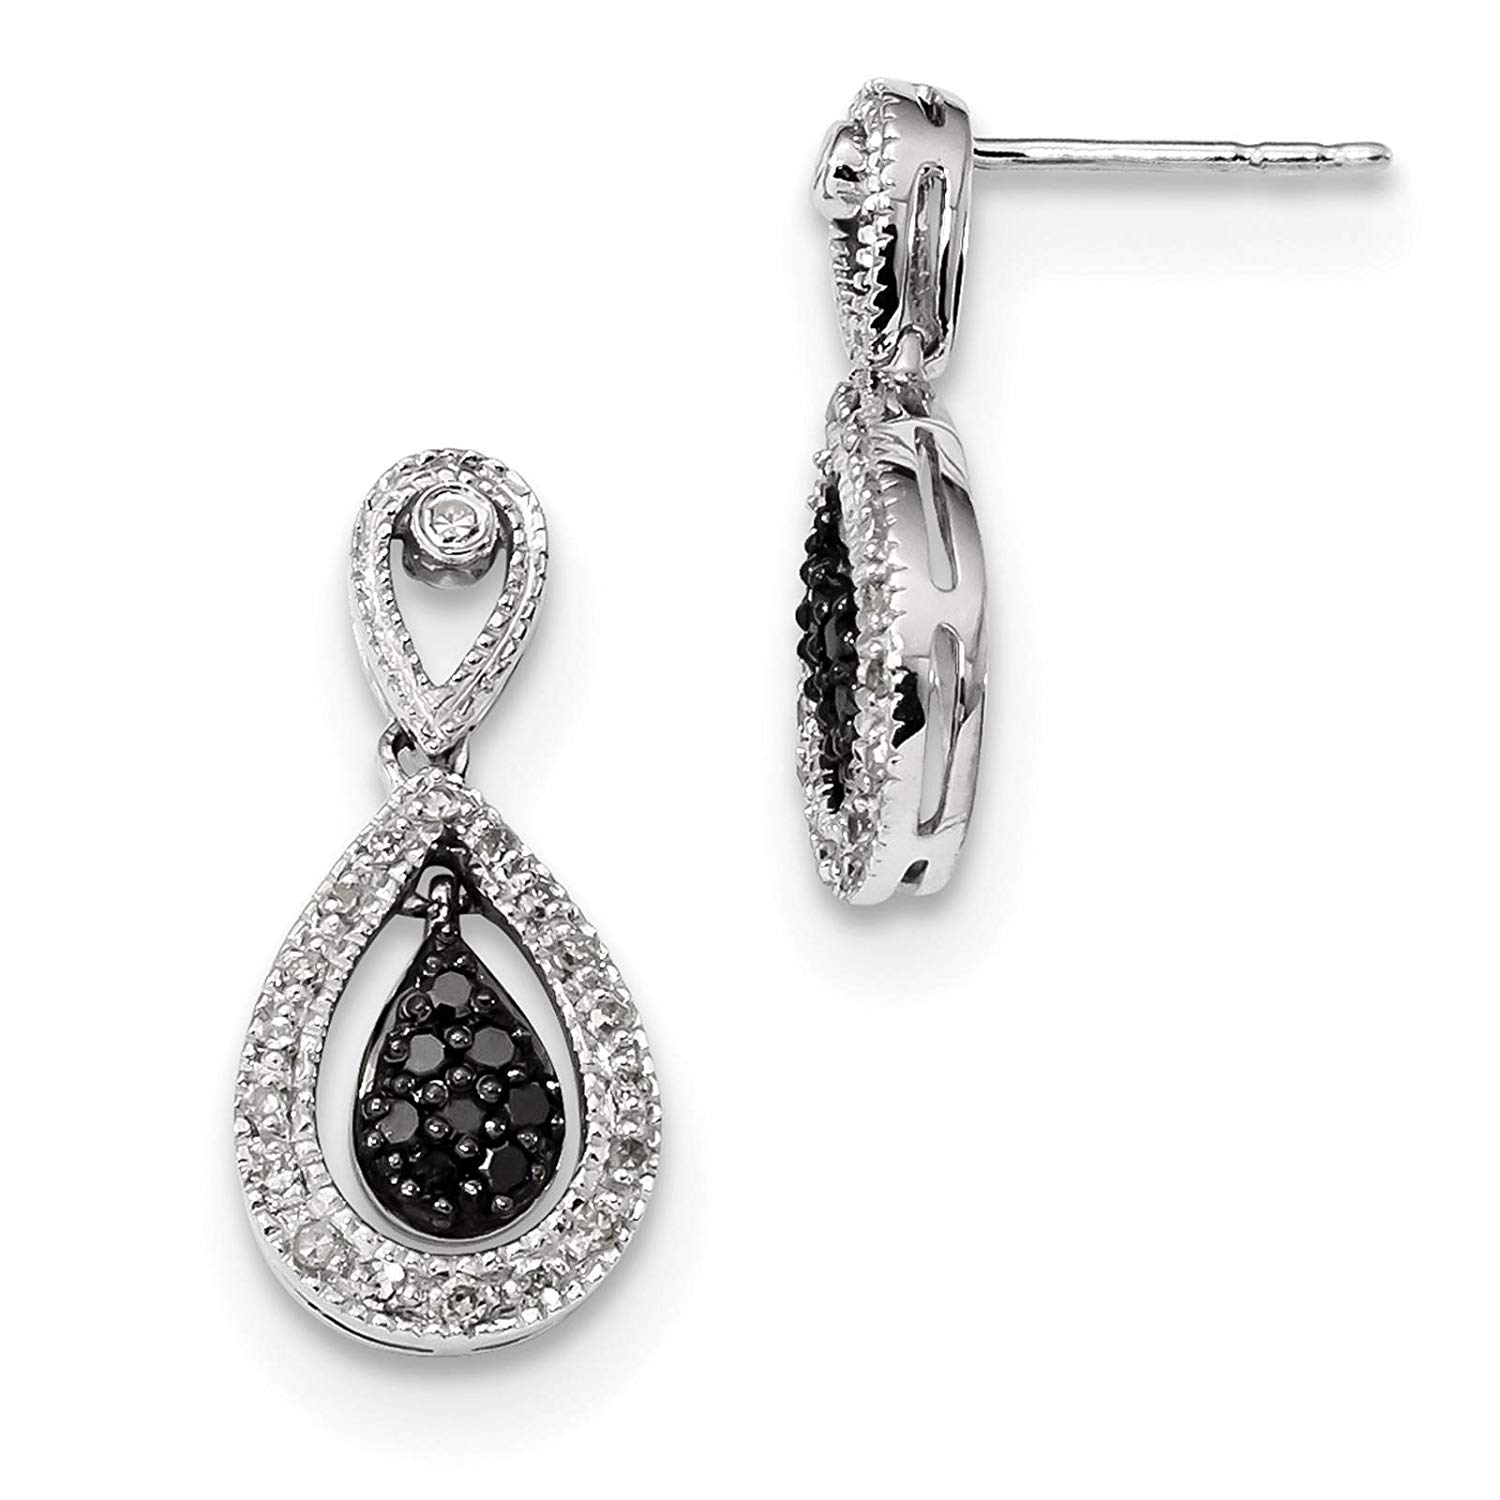 5a0b0ad4281b7 Get Quotations .925 Sterling Silver Rhodium-plated Black   White Diamond  Dangle Post Earrings by White .